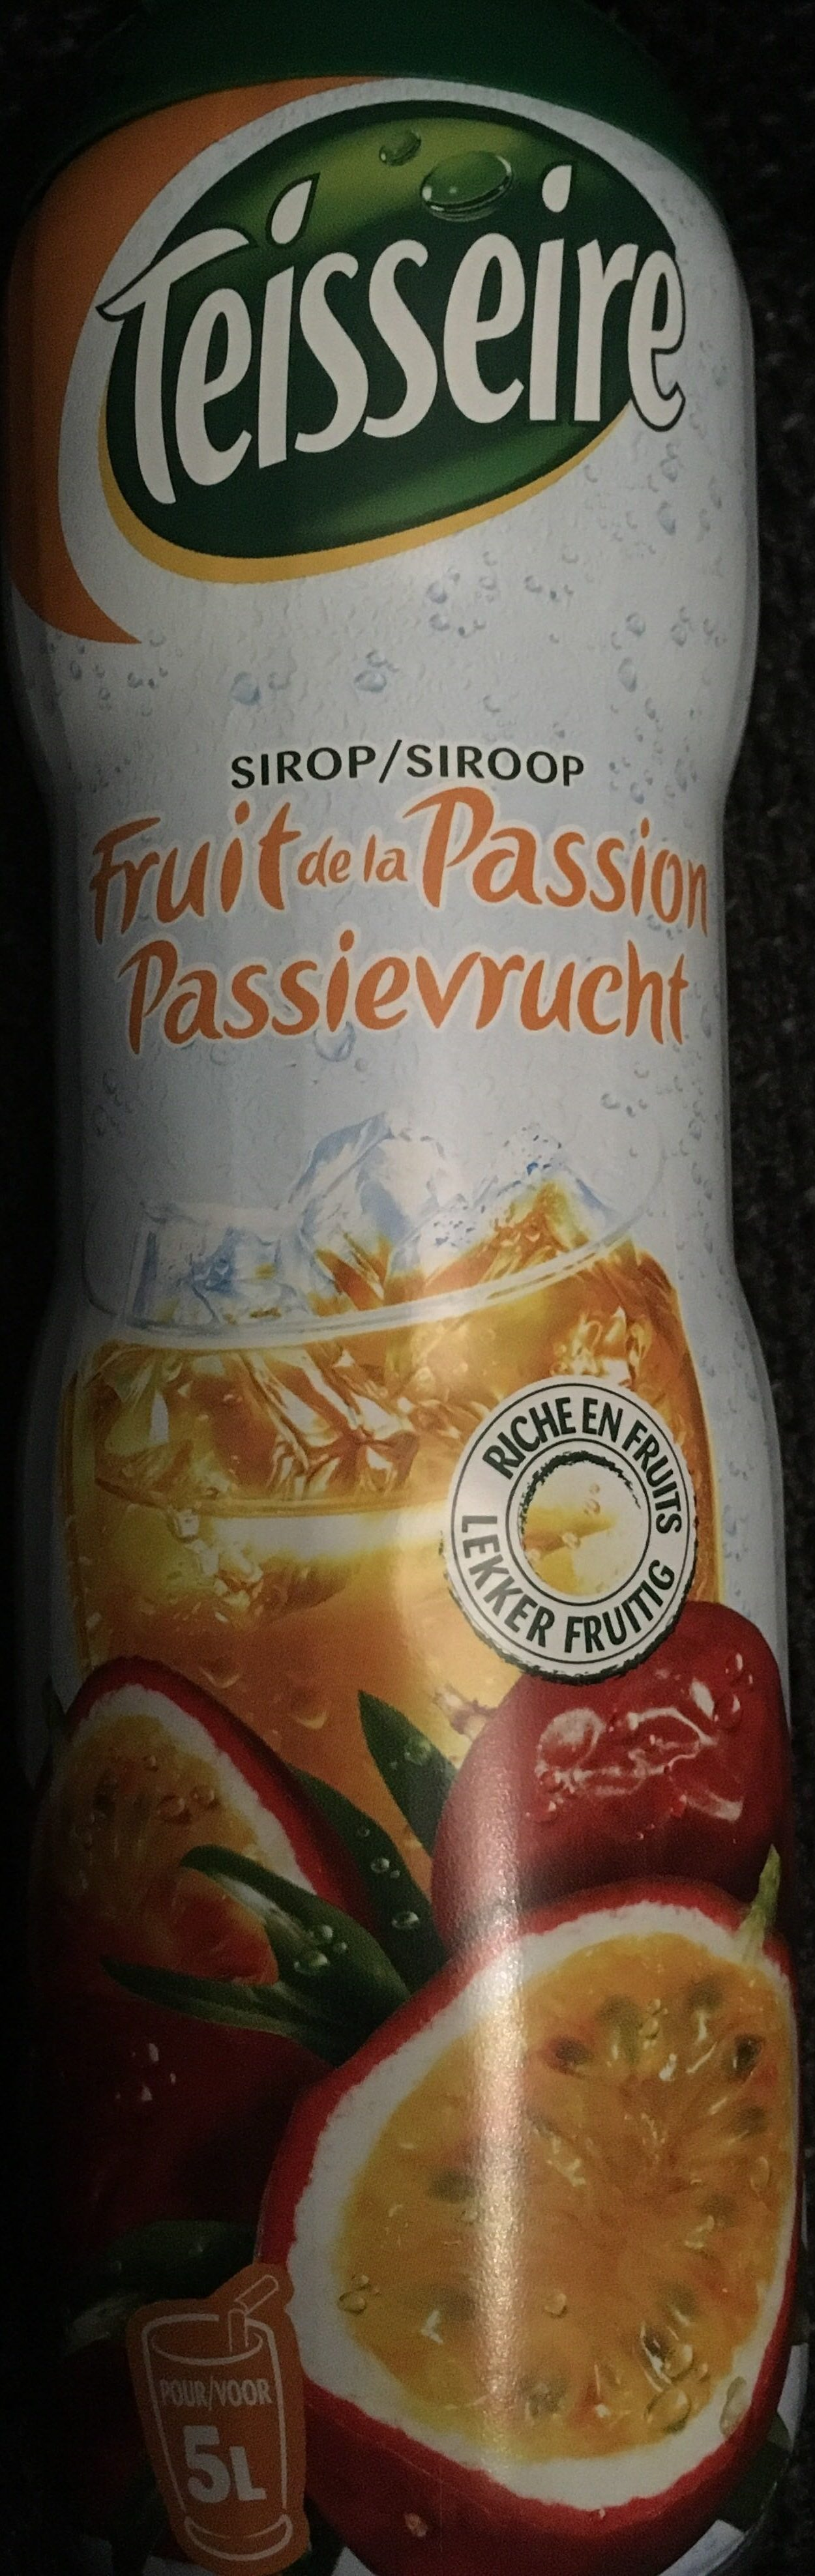 Teisseire passion - Product - fr